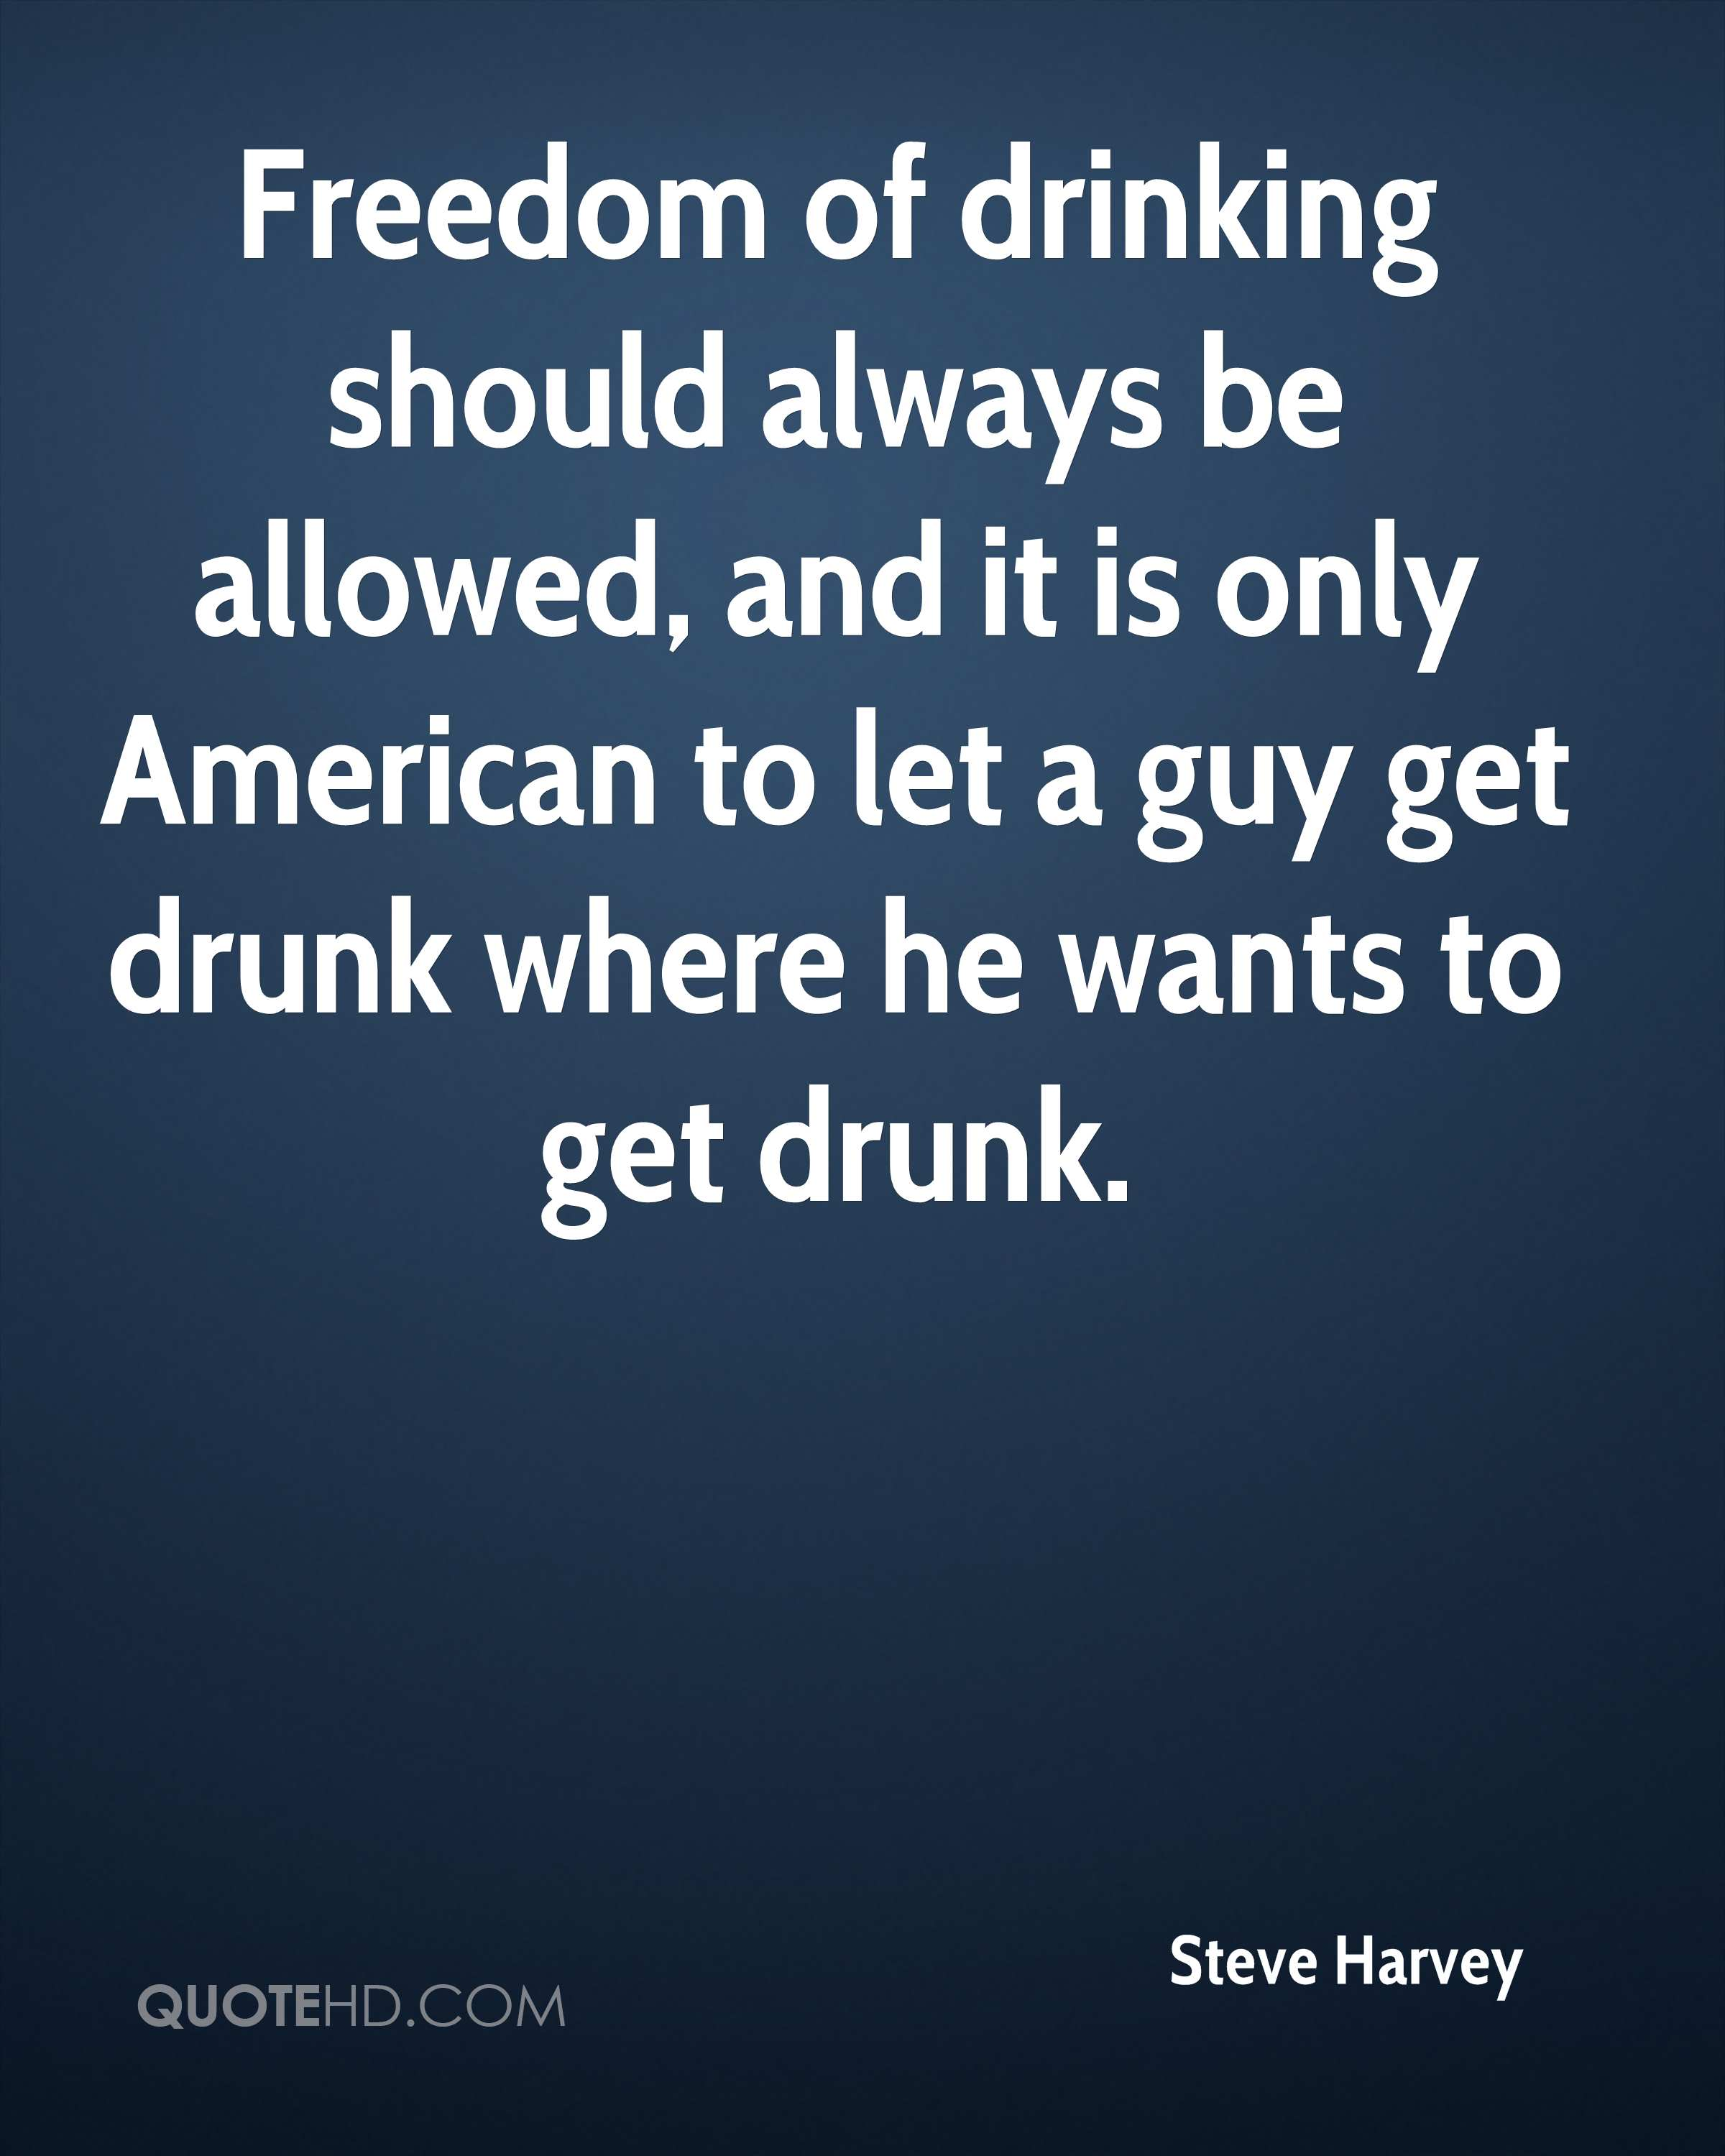 Freedom of drinking should always be allowed, and it is only American to let a guy get drunk where he wants to get drunk.